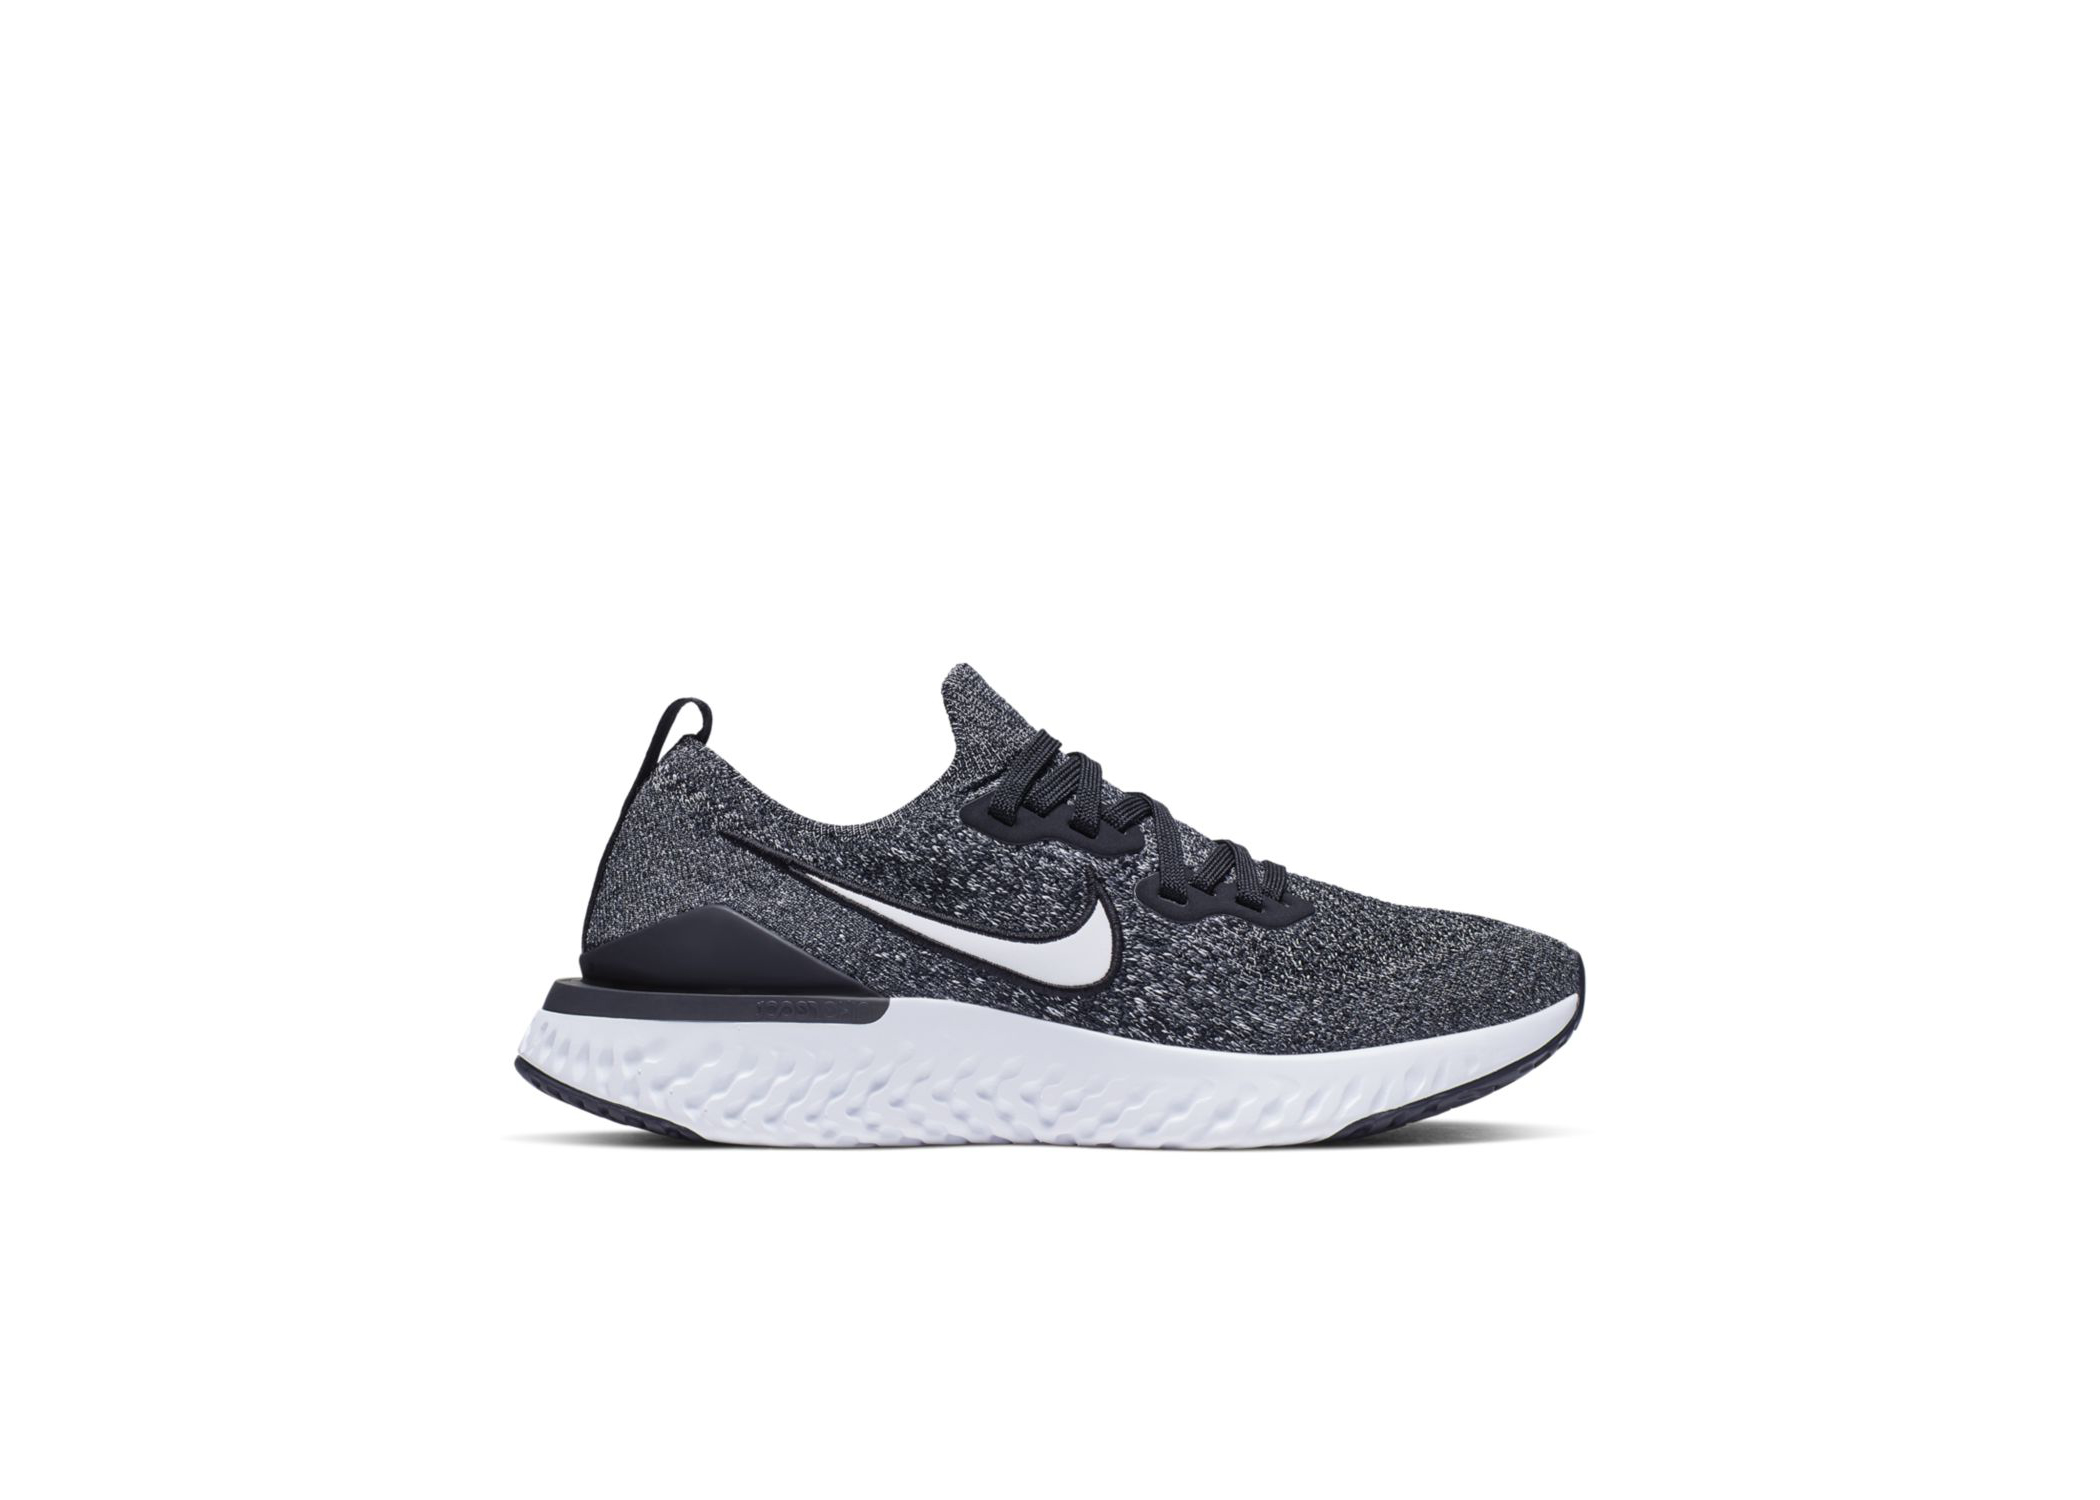 Nike Epic React Flyknit GS Shop Nike Epic React Flyknit 2 Black (Gs) In Black/White/White